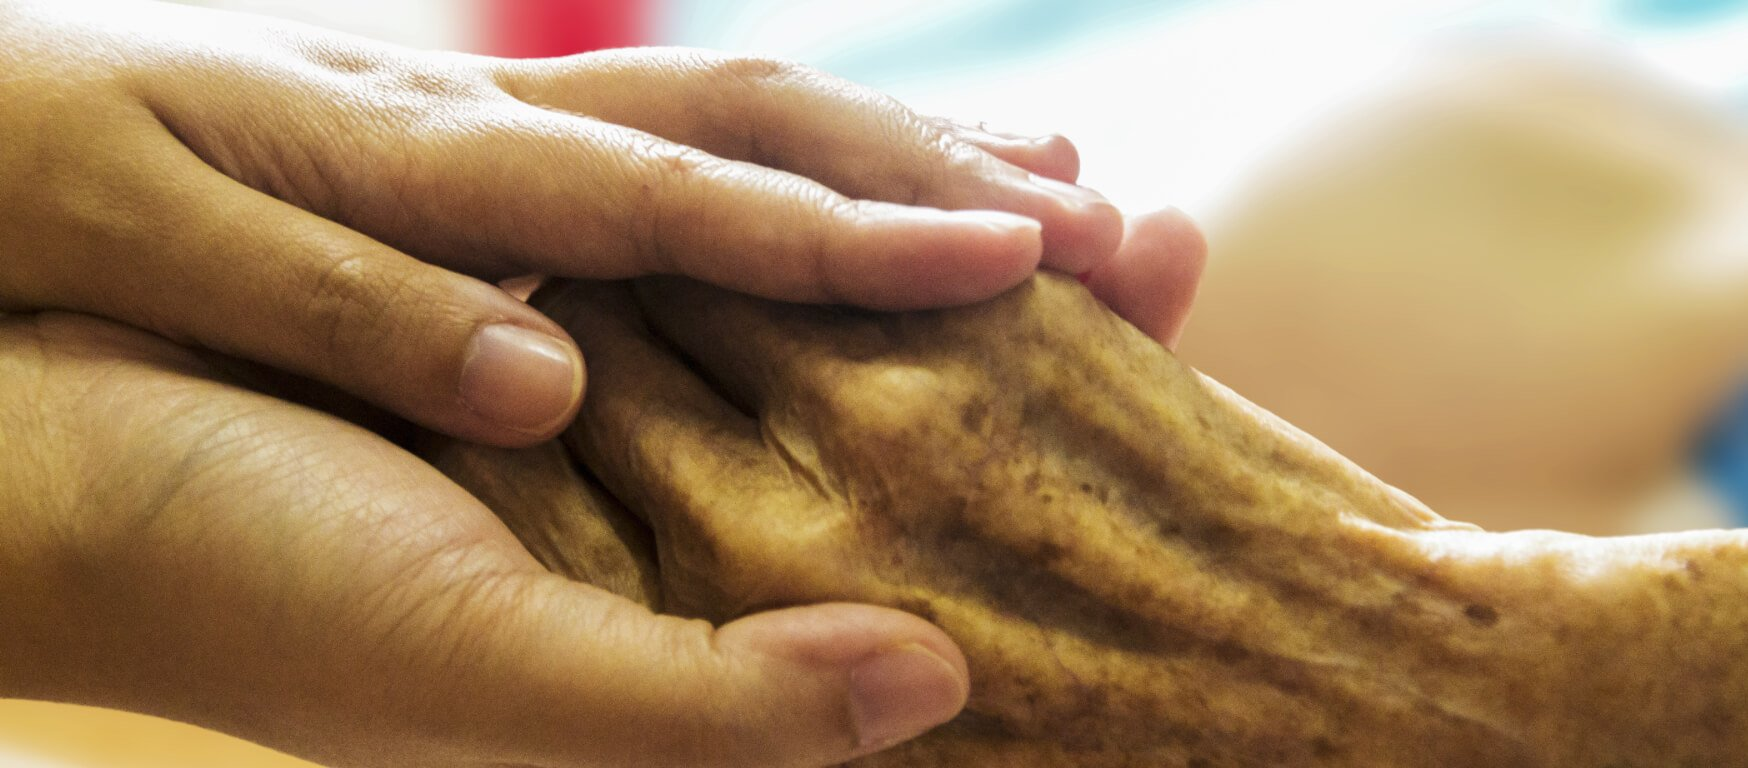 Medical Assistance in Dying in PEI